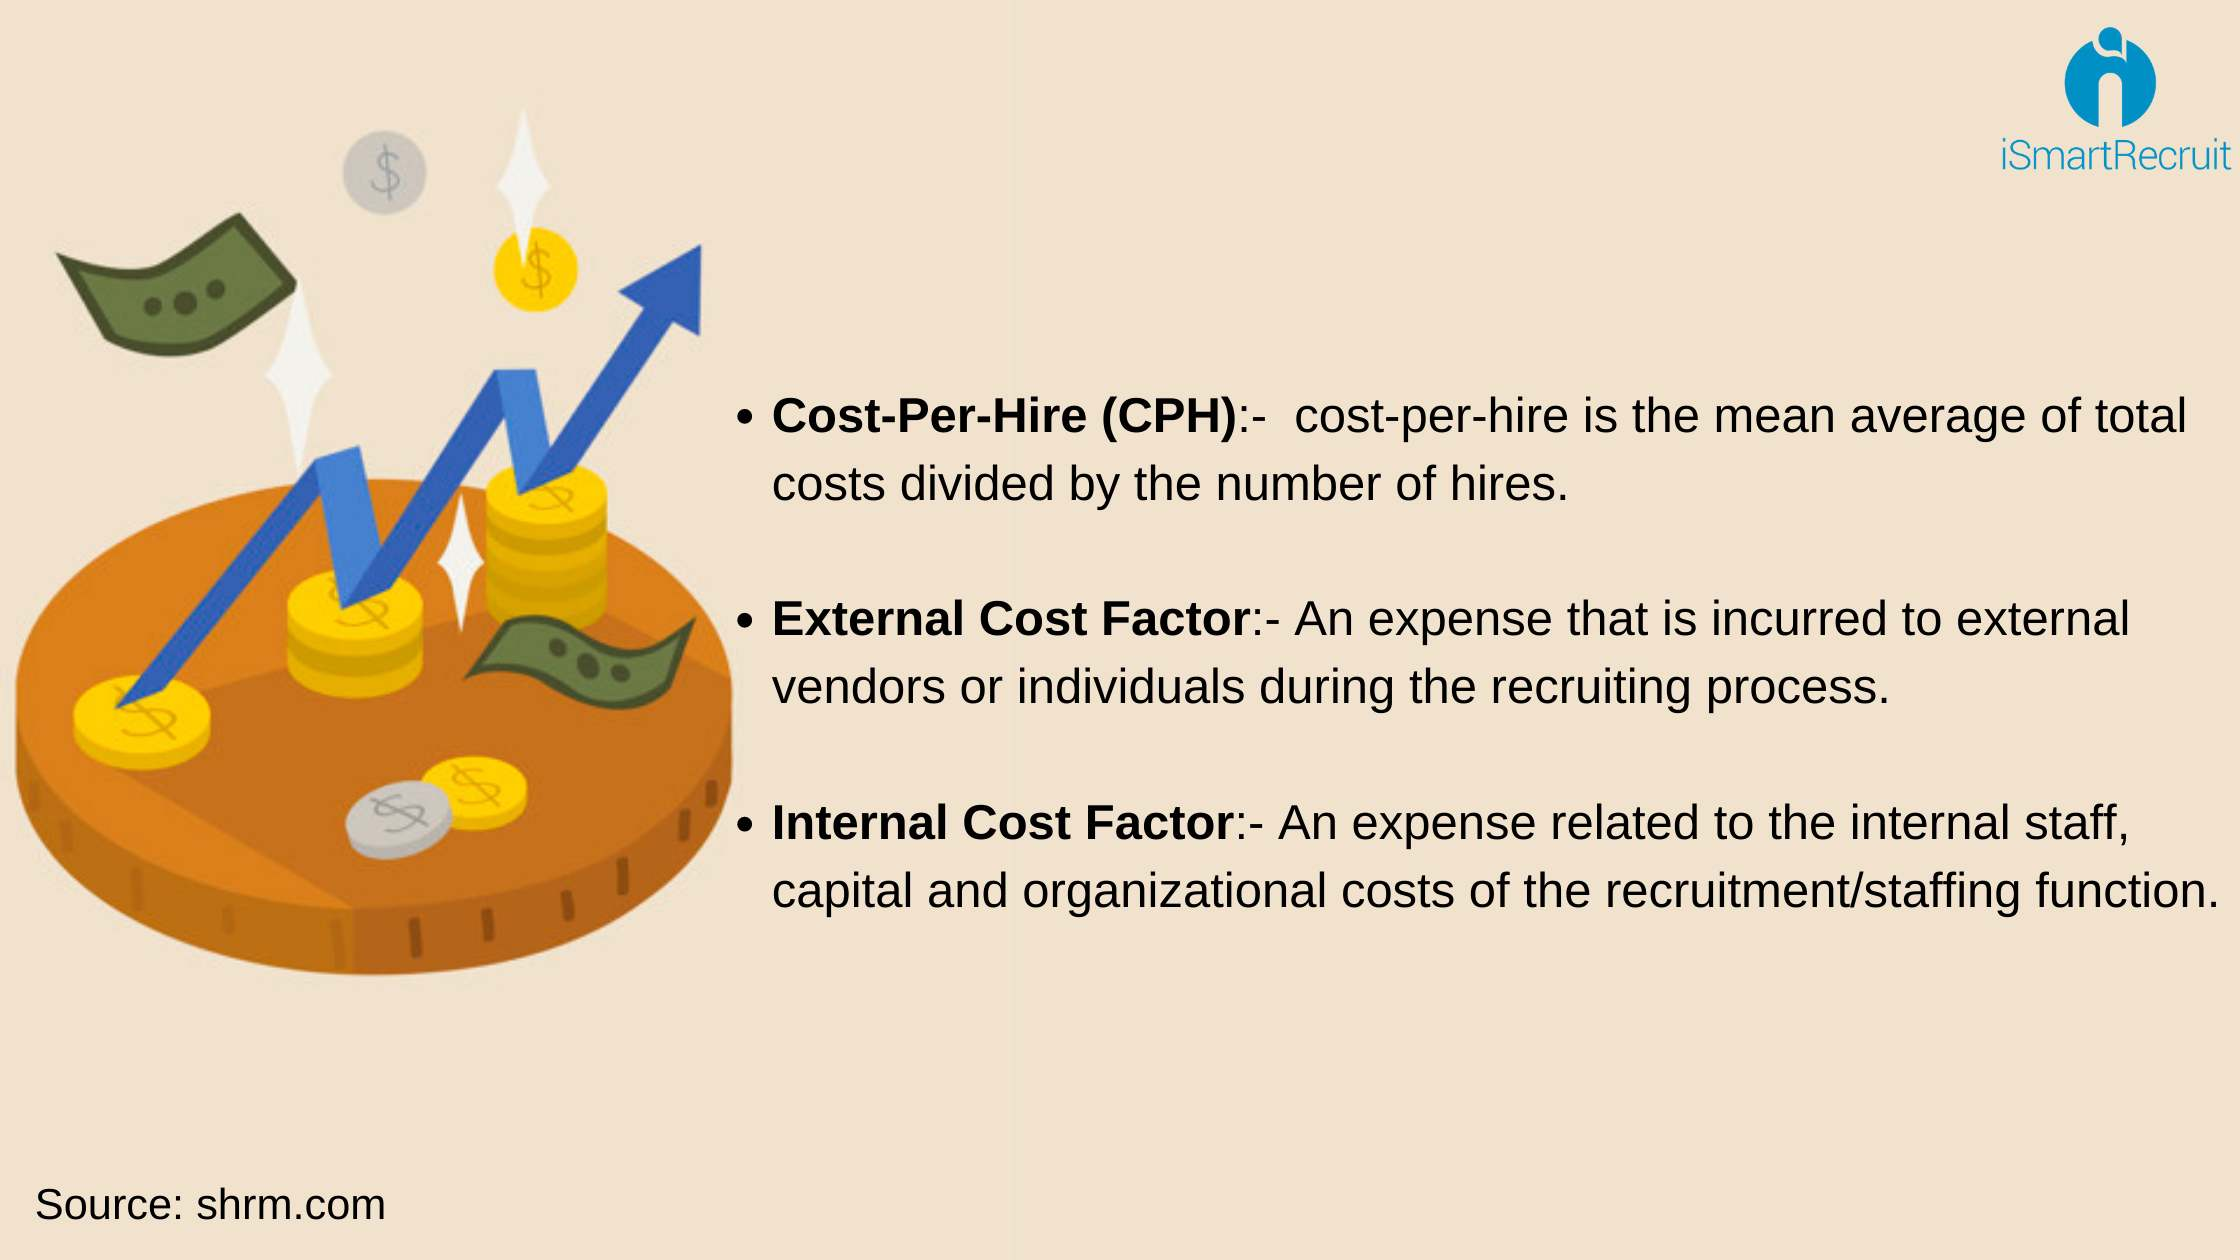 Cost per hire, External cost factor and internal cost factor